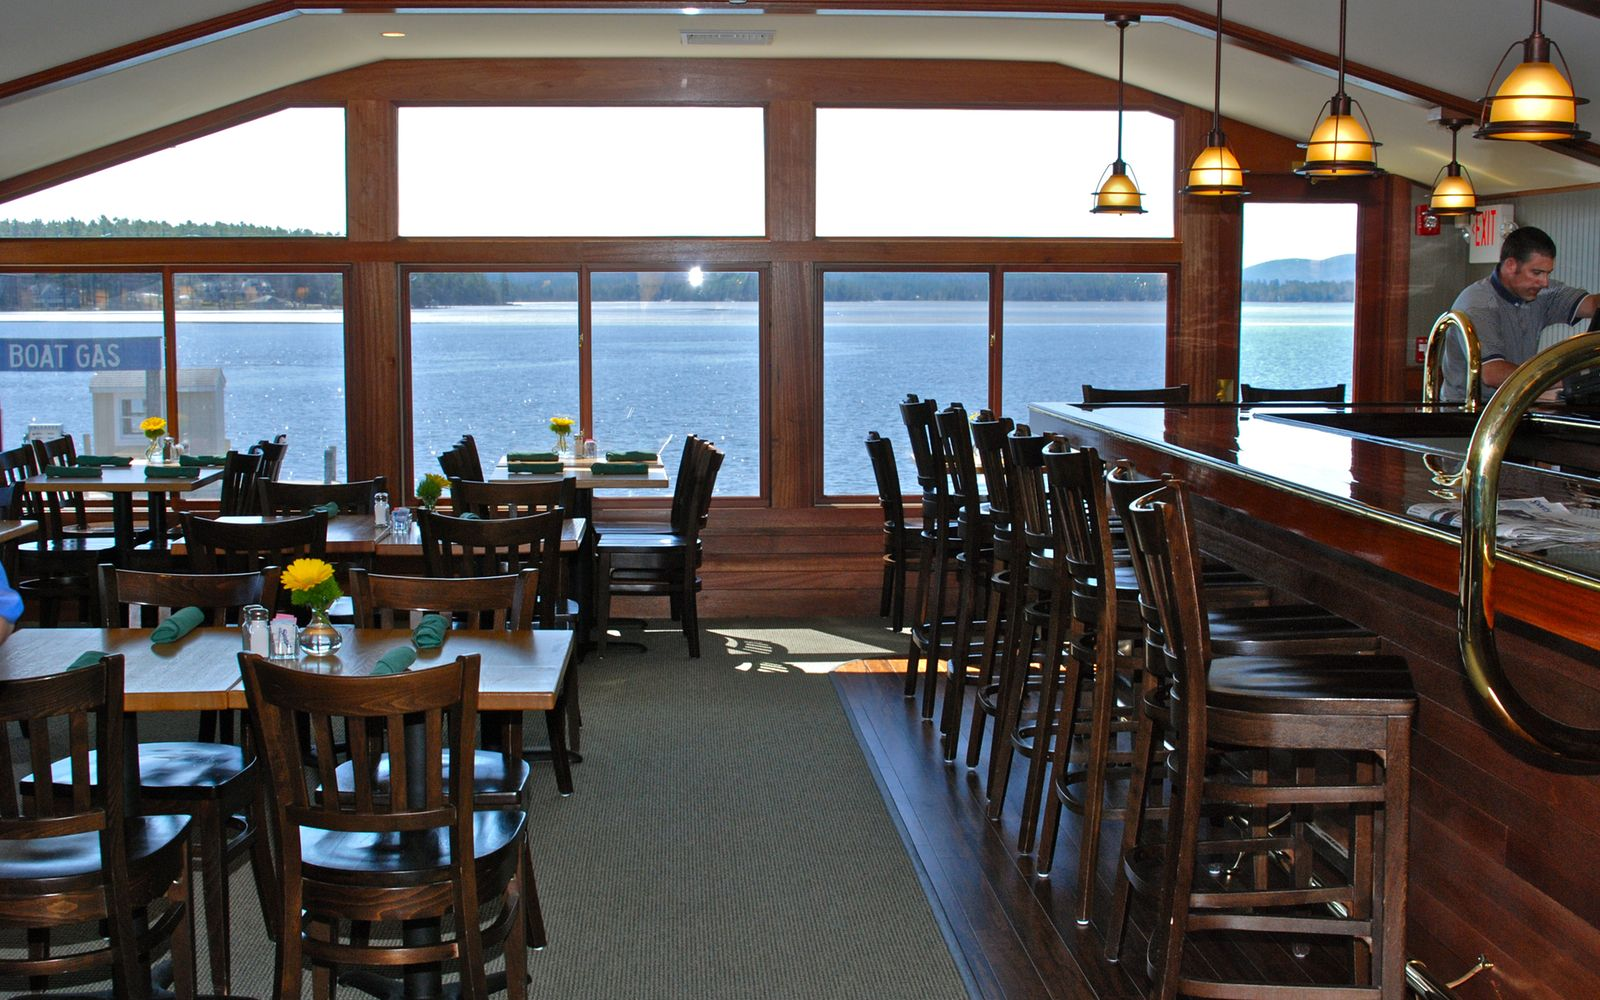 Look For The Dive Boat Behind Gas Dock Garwoods Restaurant Pub Dining On Ss Of Beautiful Wolfeboro Bay Lake Winnipesaukee Nh